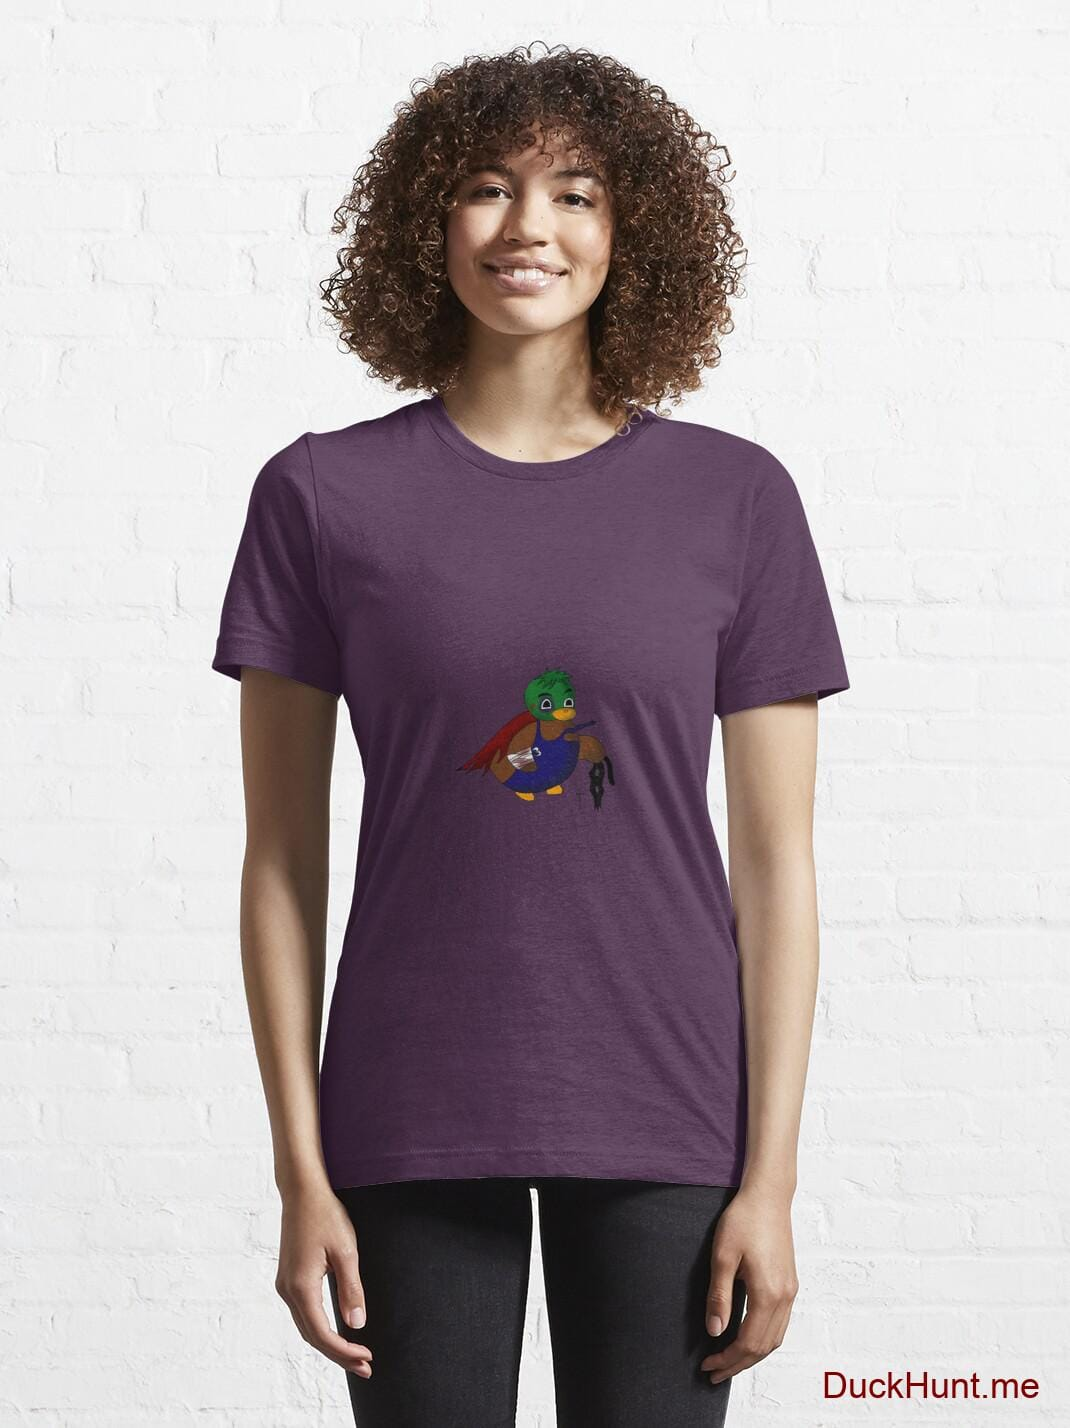 Dead DuckHunt Boss (smokeless) Eggplant Essential T-Shirt (Front printed) alternative image 5